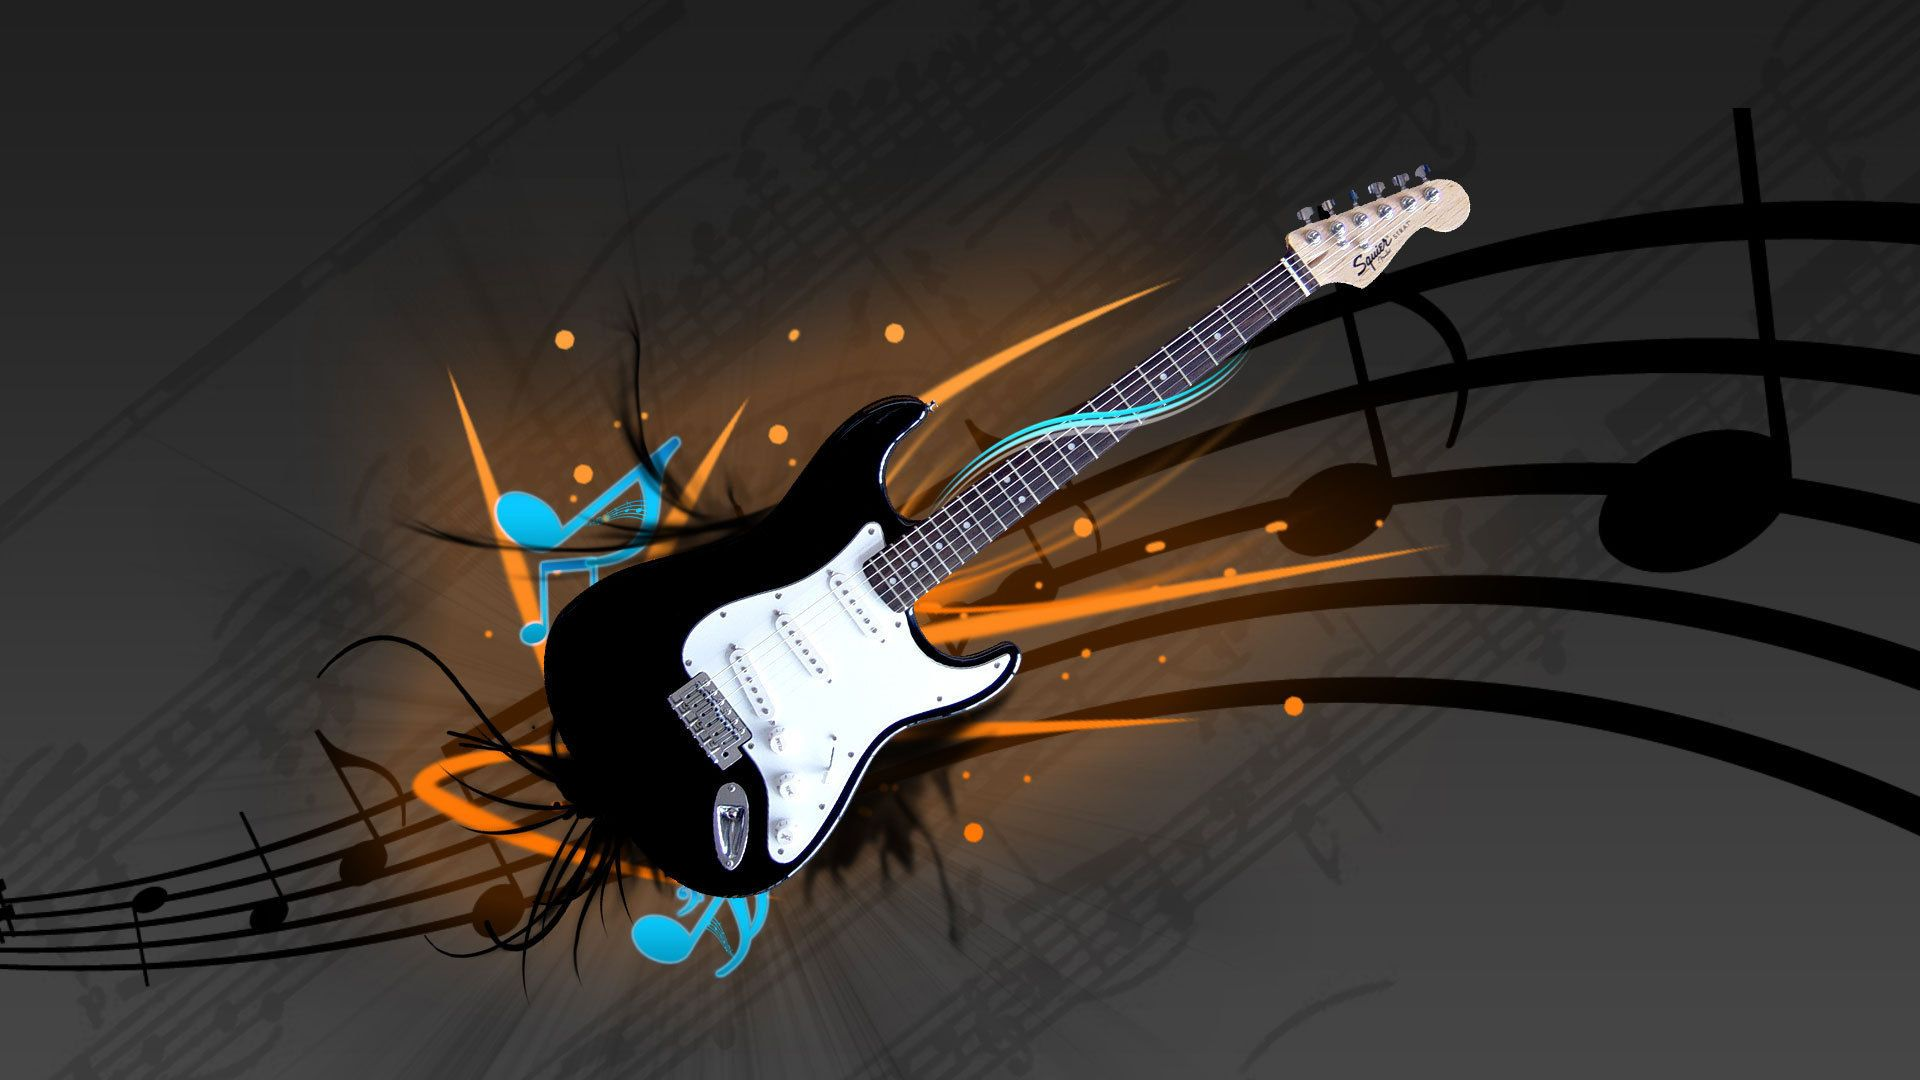 Music fender squier Guitar stratocaster electric guitar,. iPhone wallpapers for free.